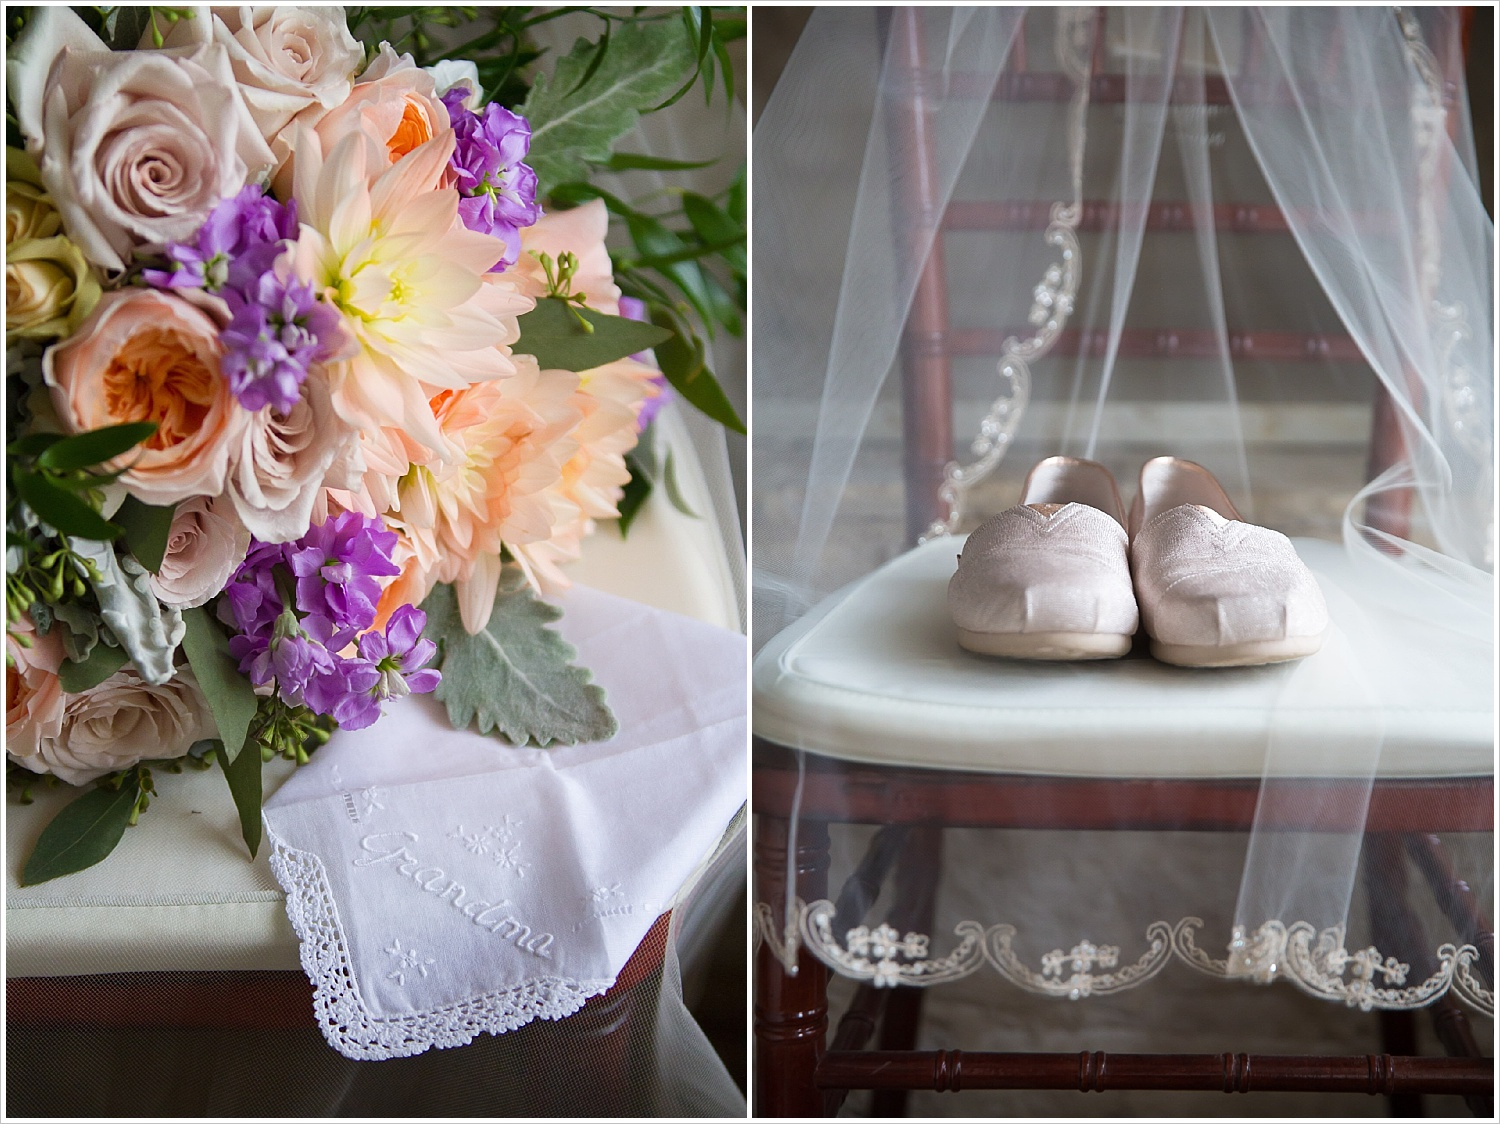 Bride's bouquet, wedding day shoes, and Grandmother's handkerchief